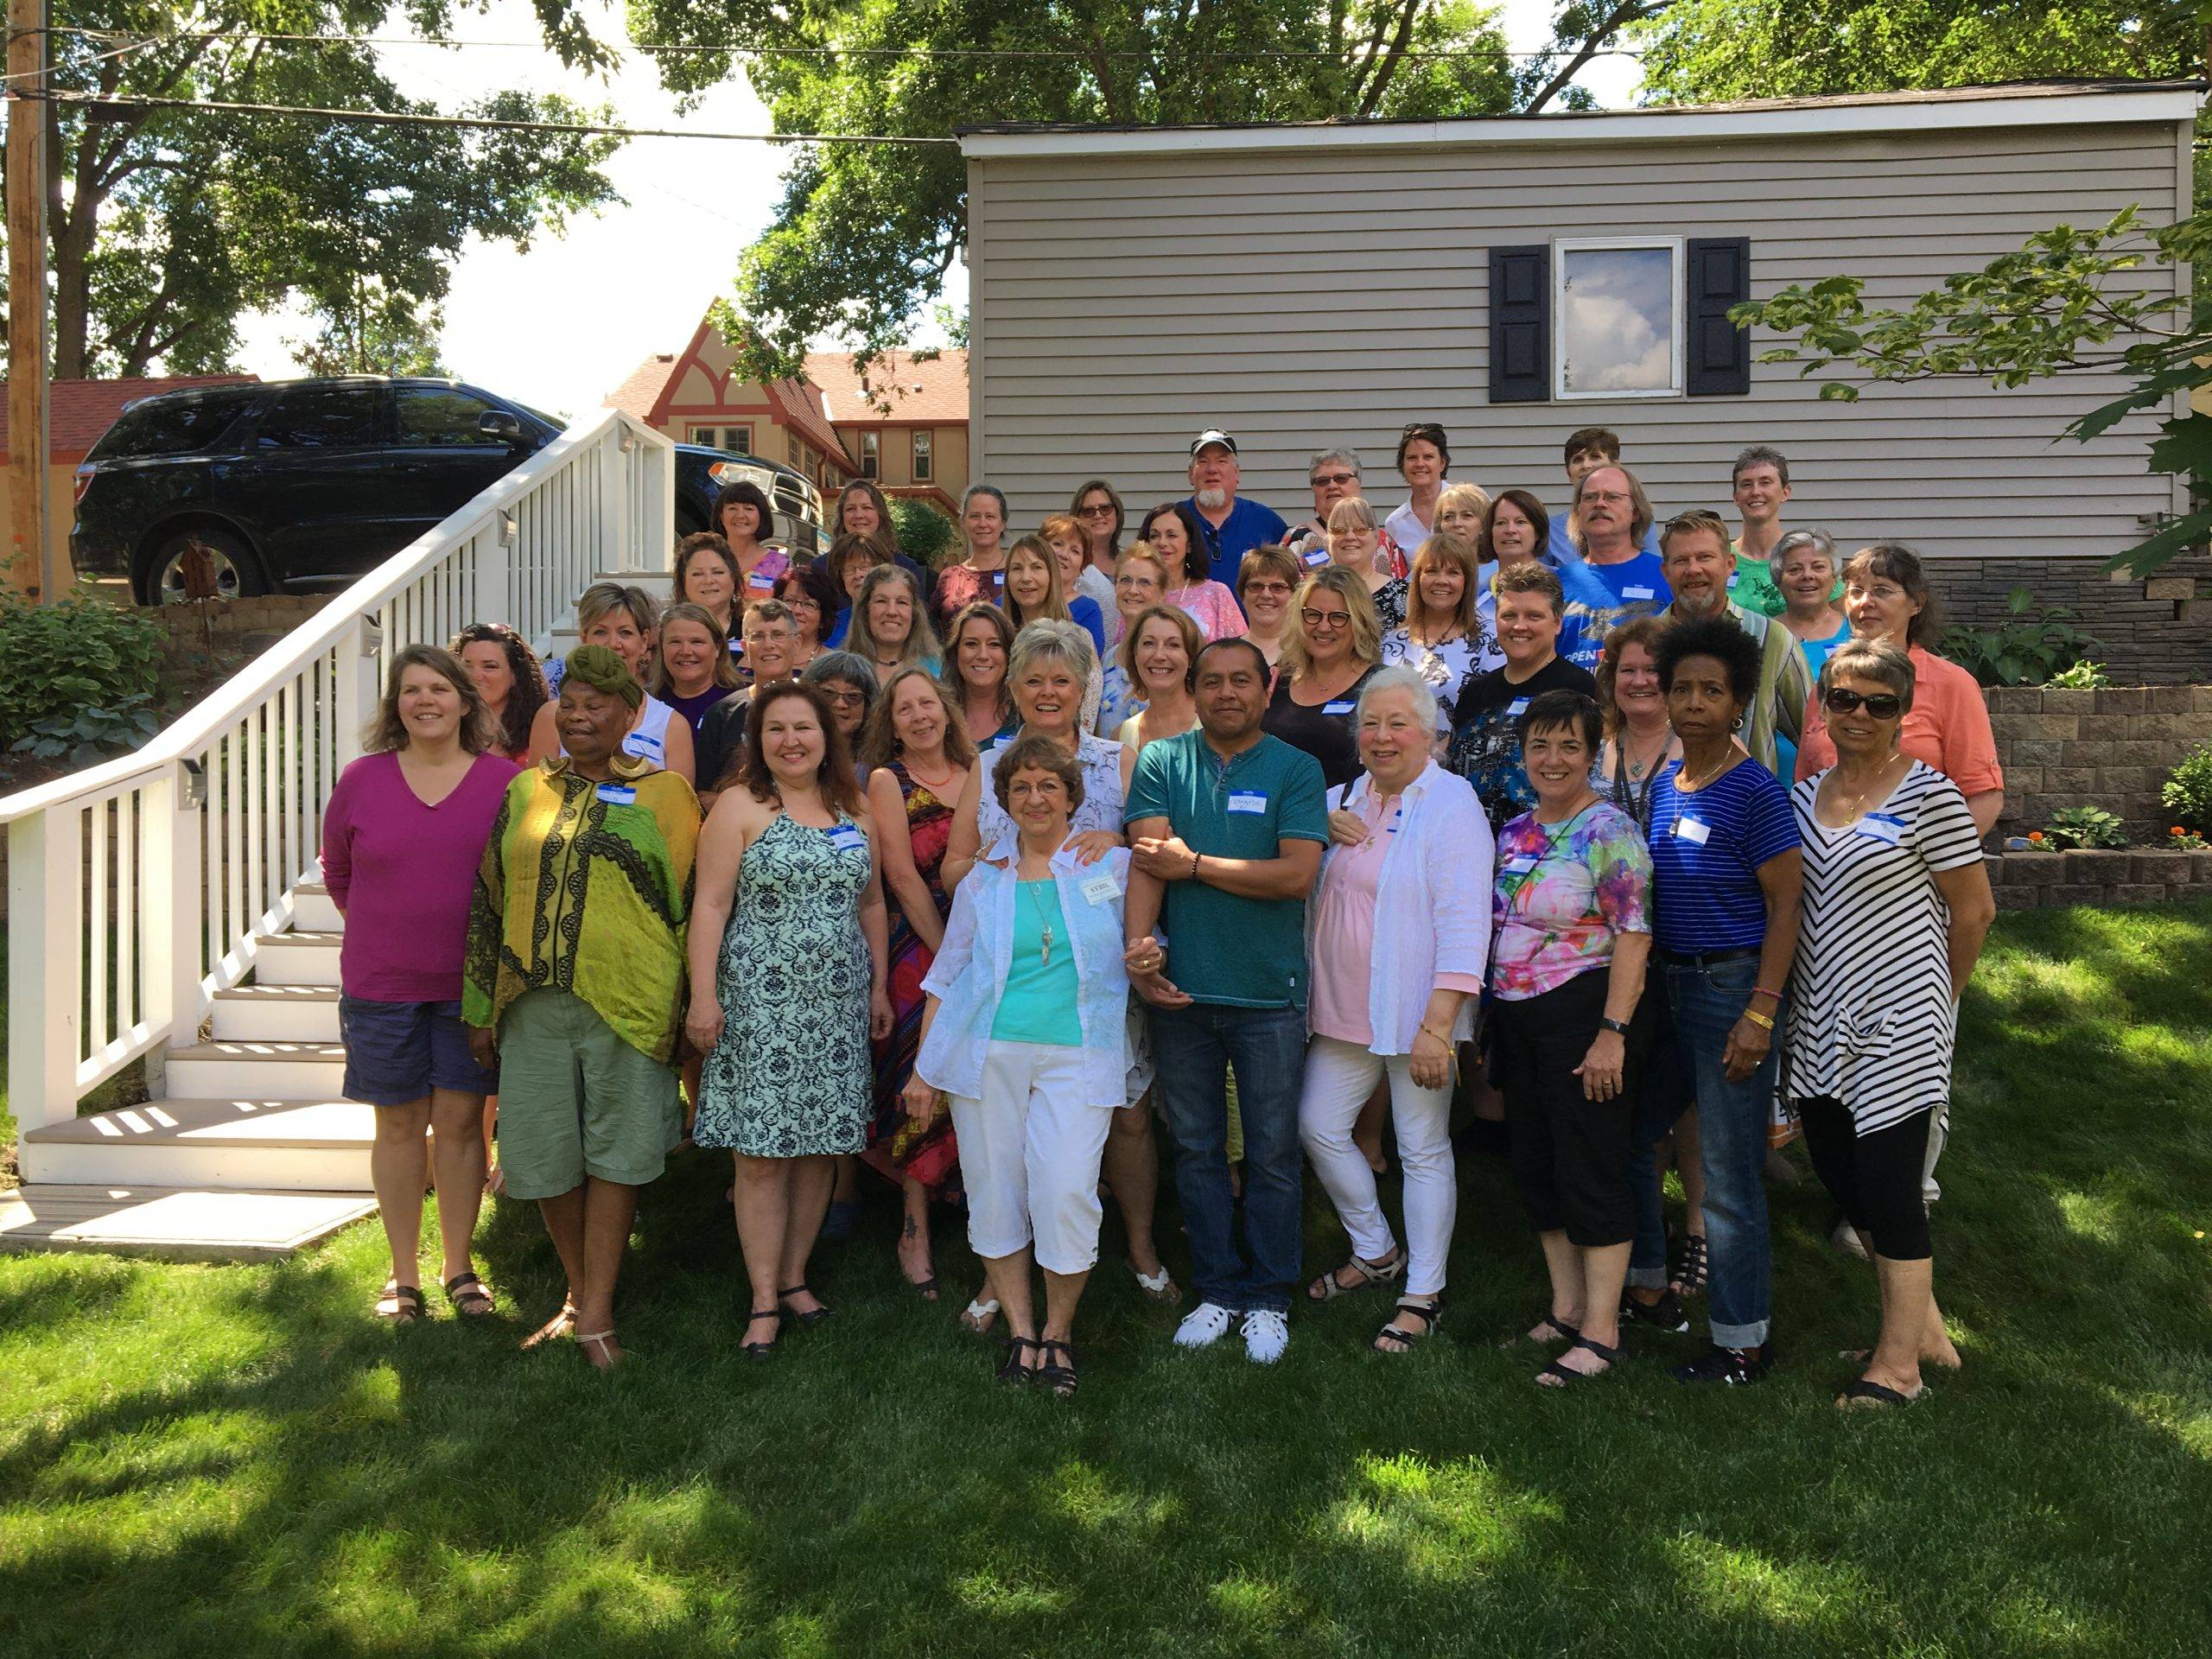 I have 140 healers in this program. Here is a photo of some of them that attended an HPP picnic in 2018.